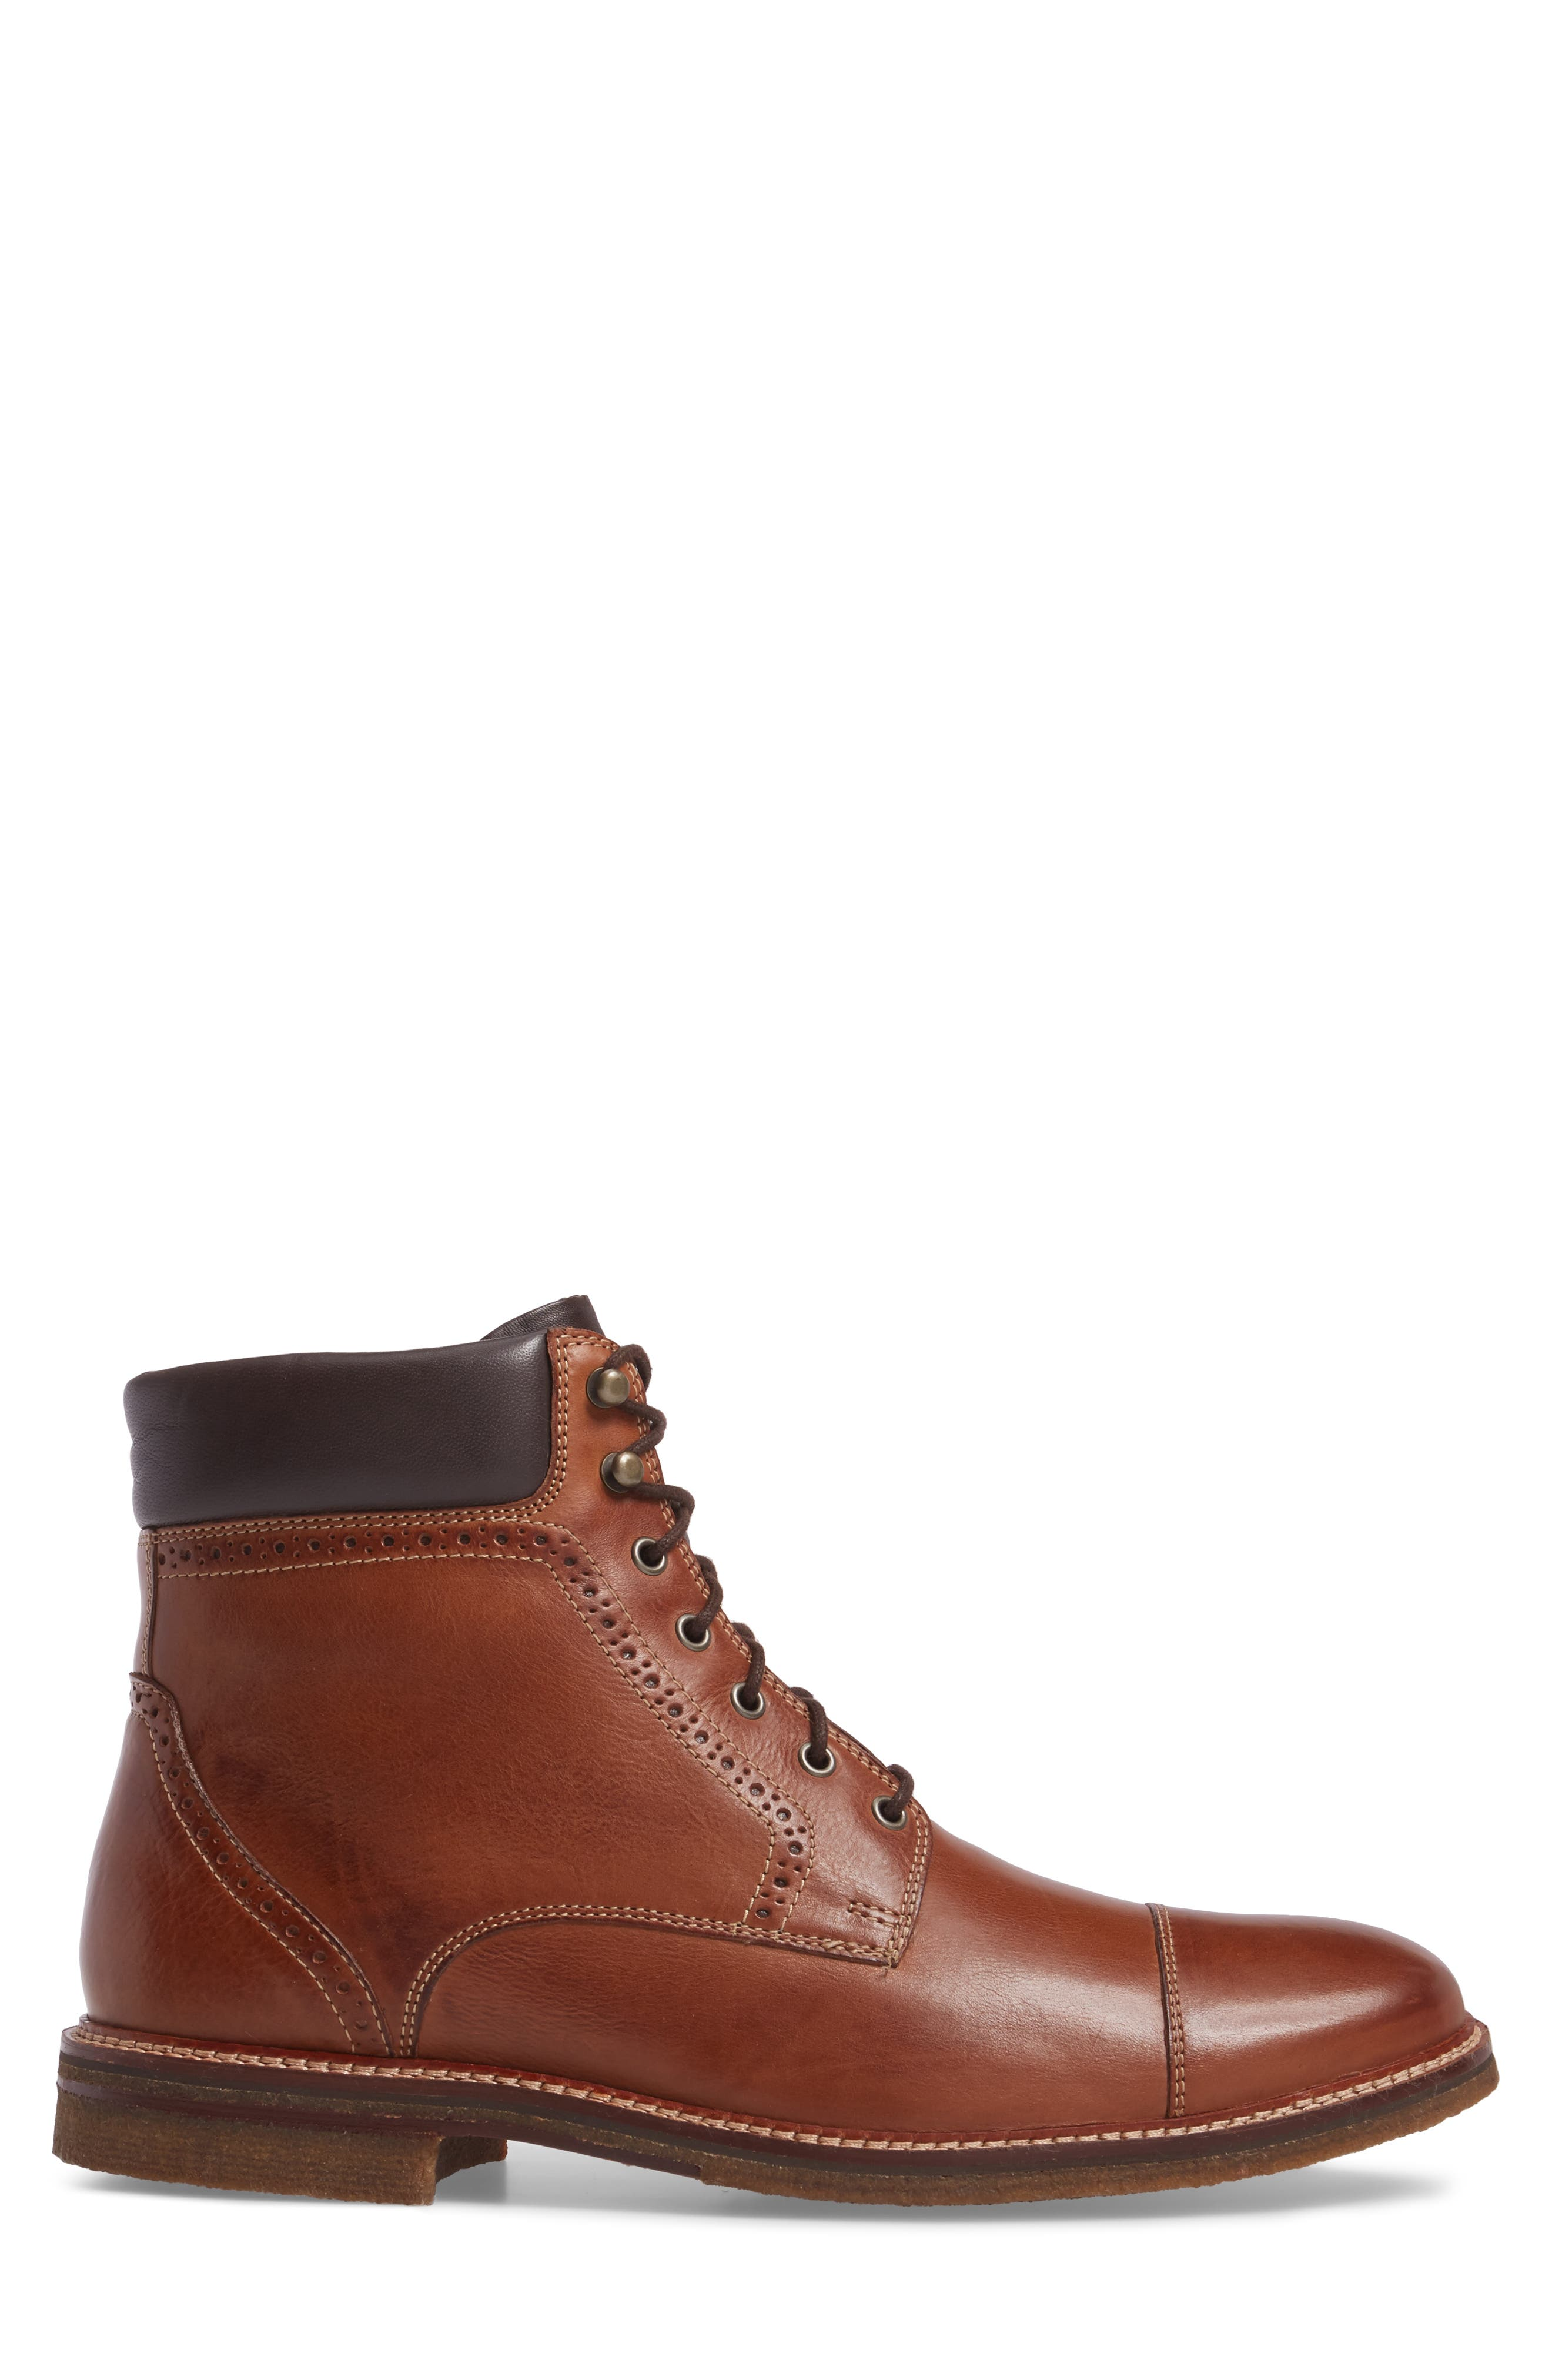 Forrester Cap Toe Boot,                             Alternate thumbnail 4, color,                             Tan Leather